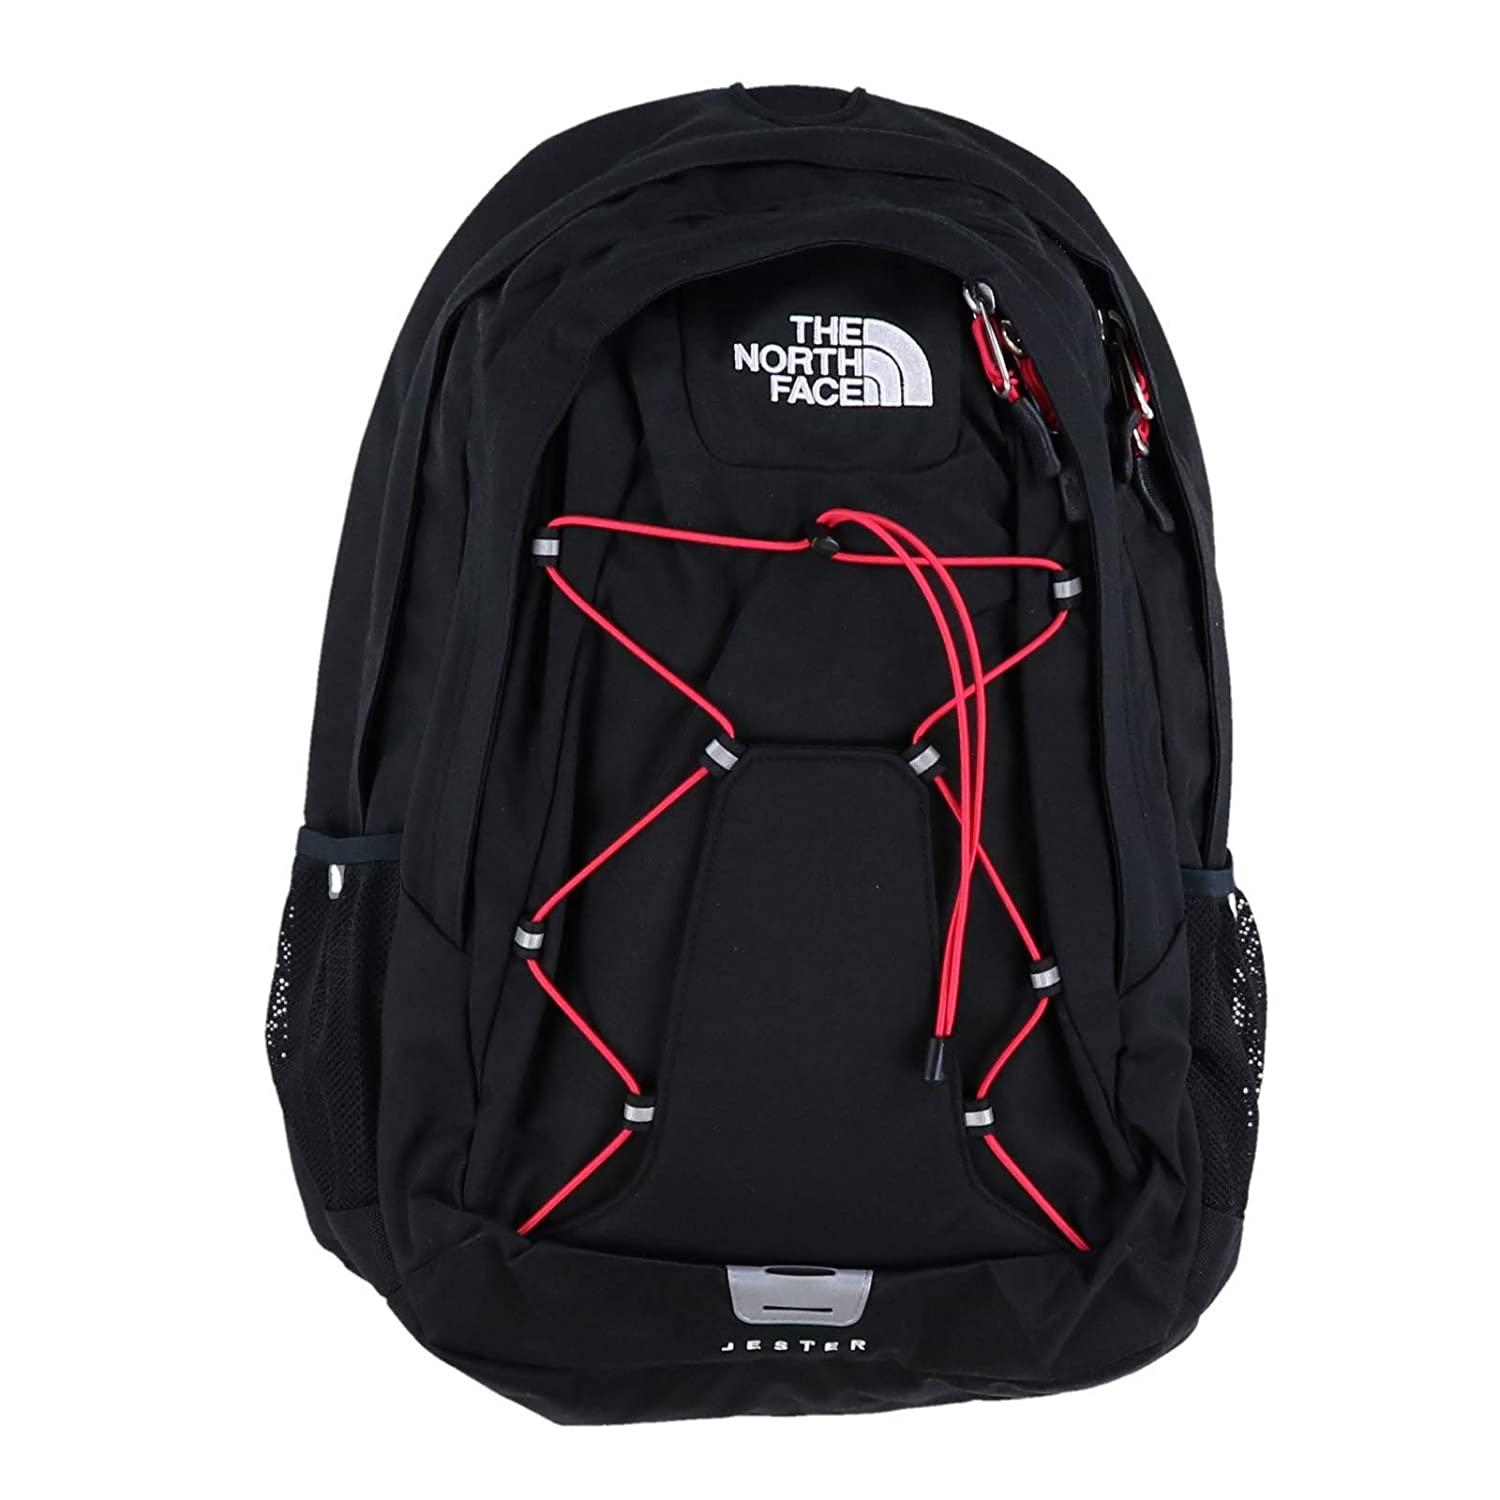 2dc8335c9 The North Face Women's Jester Backpack